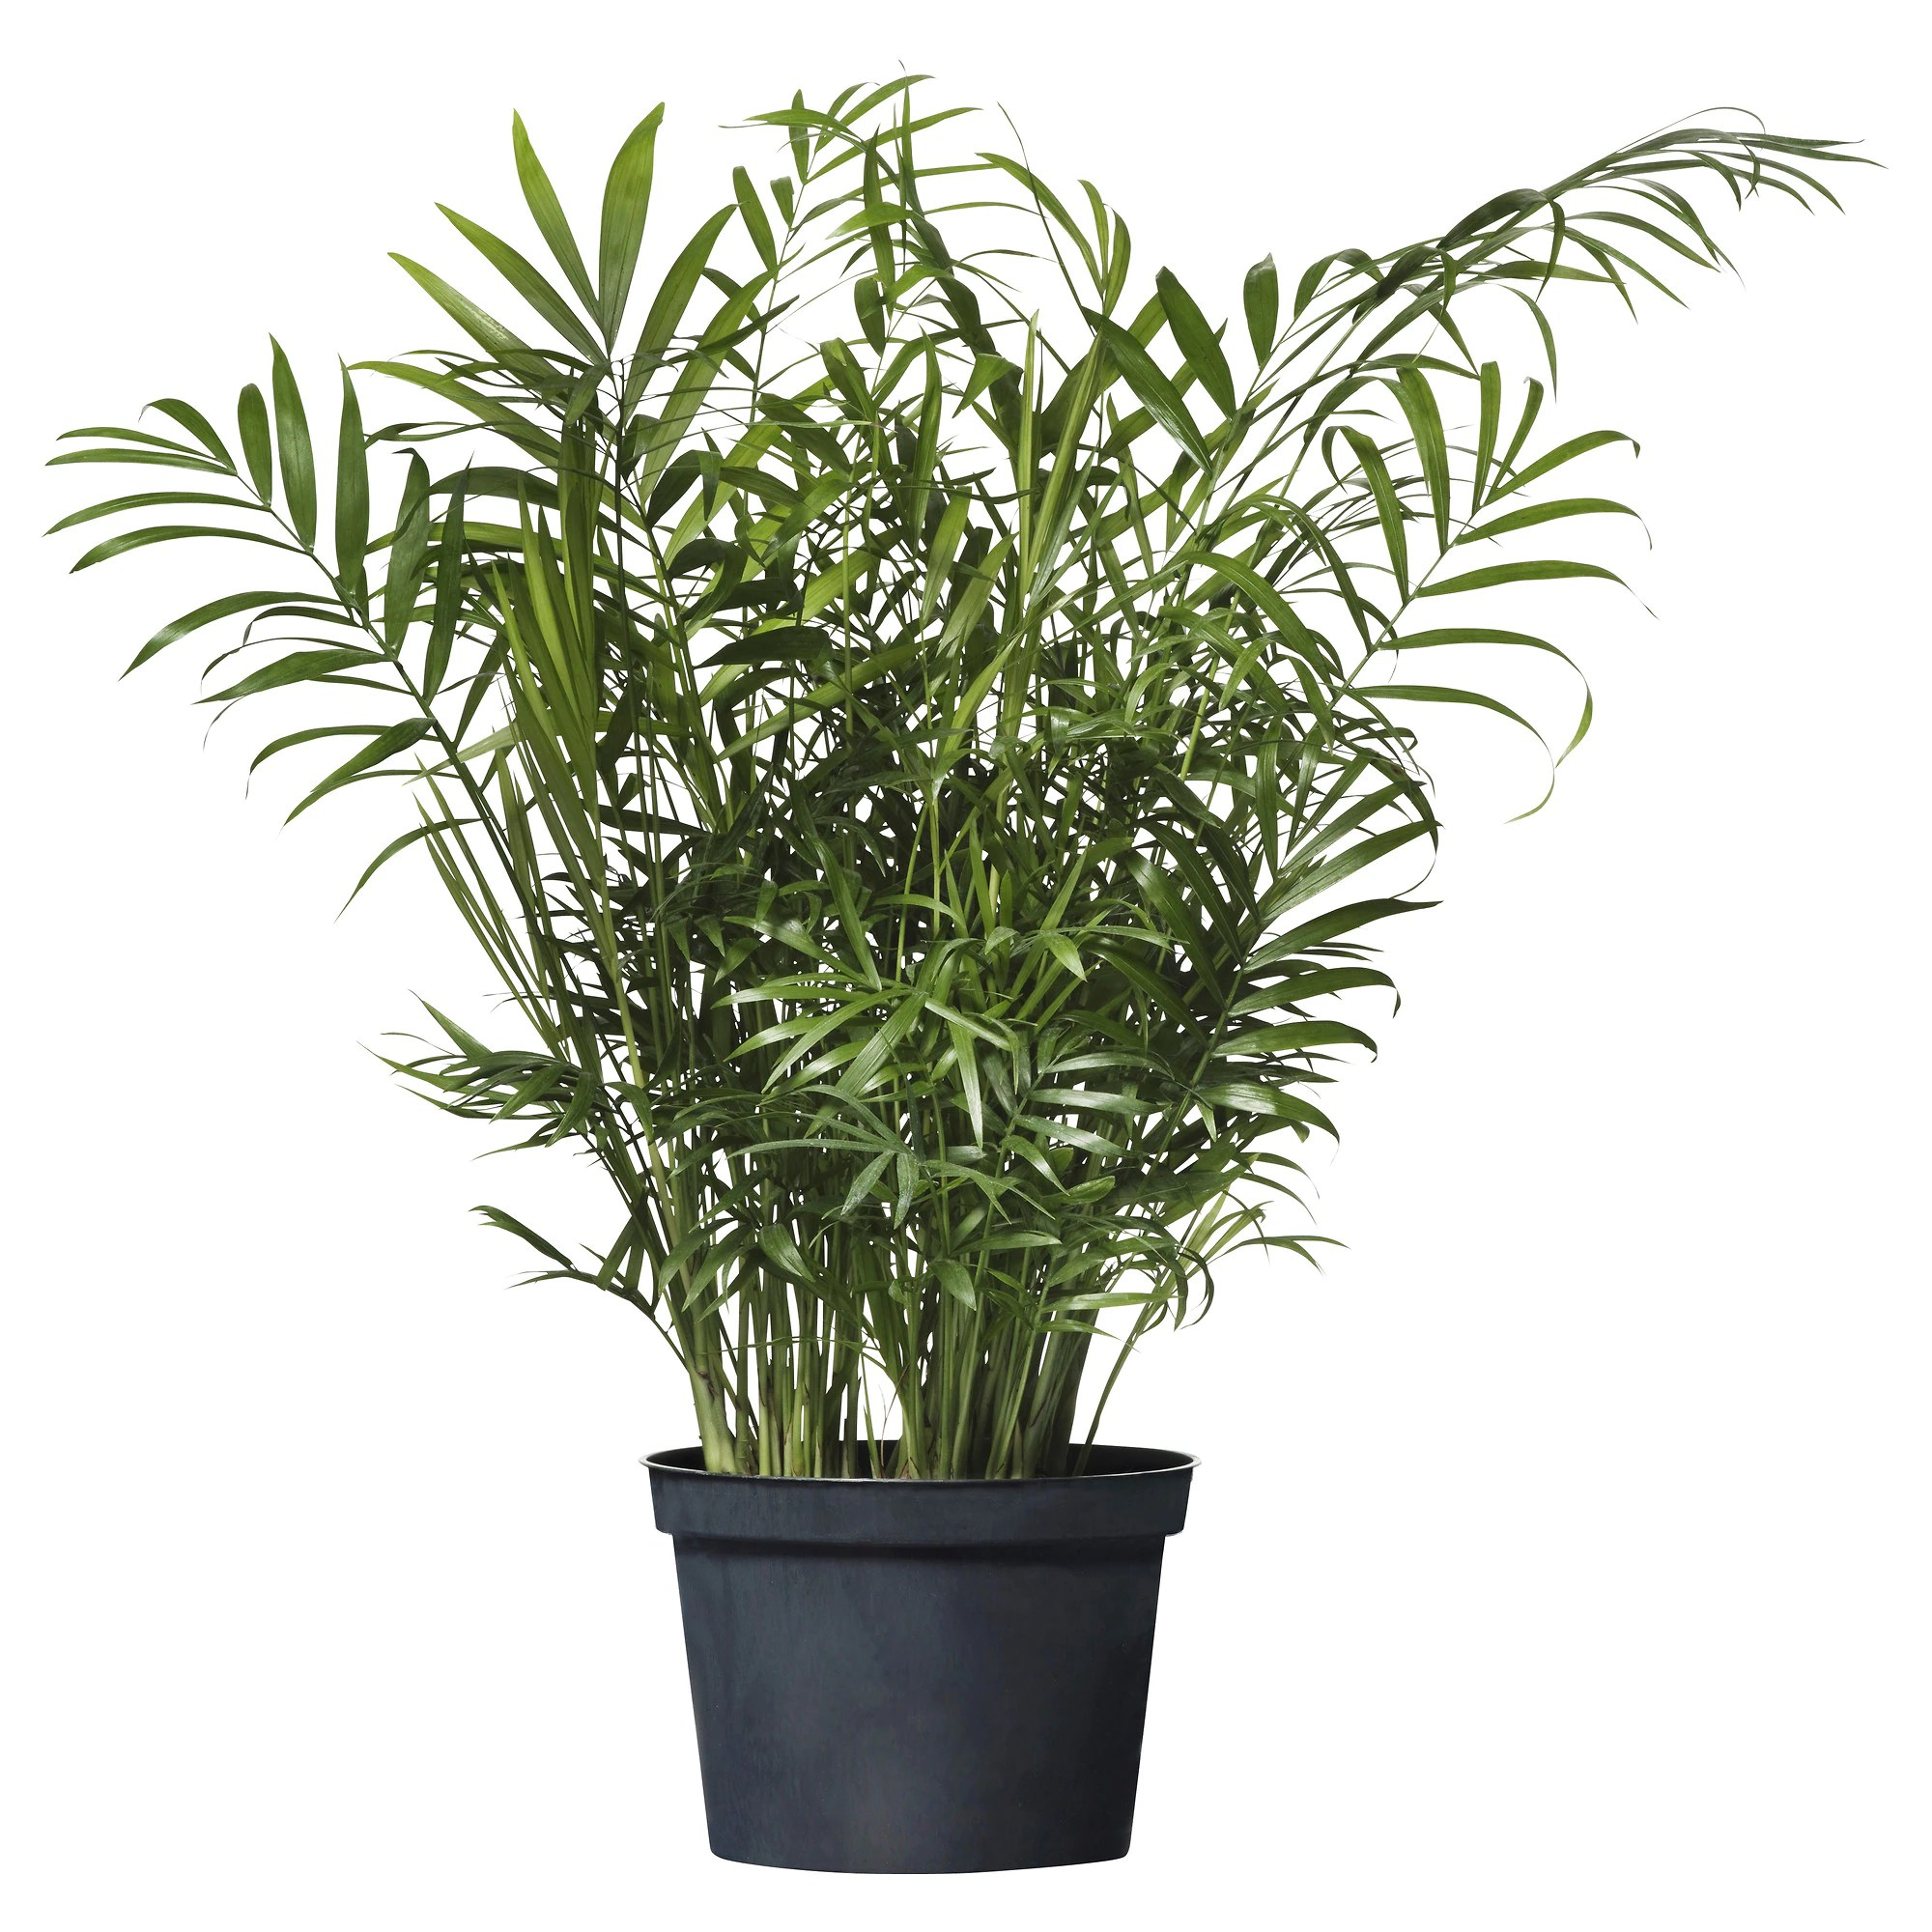 Ikea Palm Tree Chamaedorea Elegans Potted Plant Parlor Palm